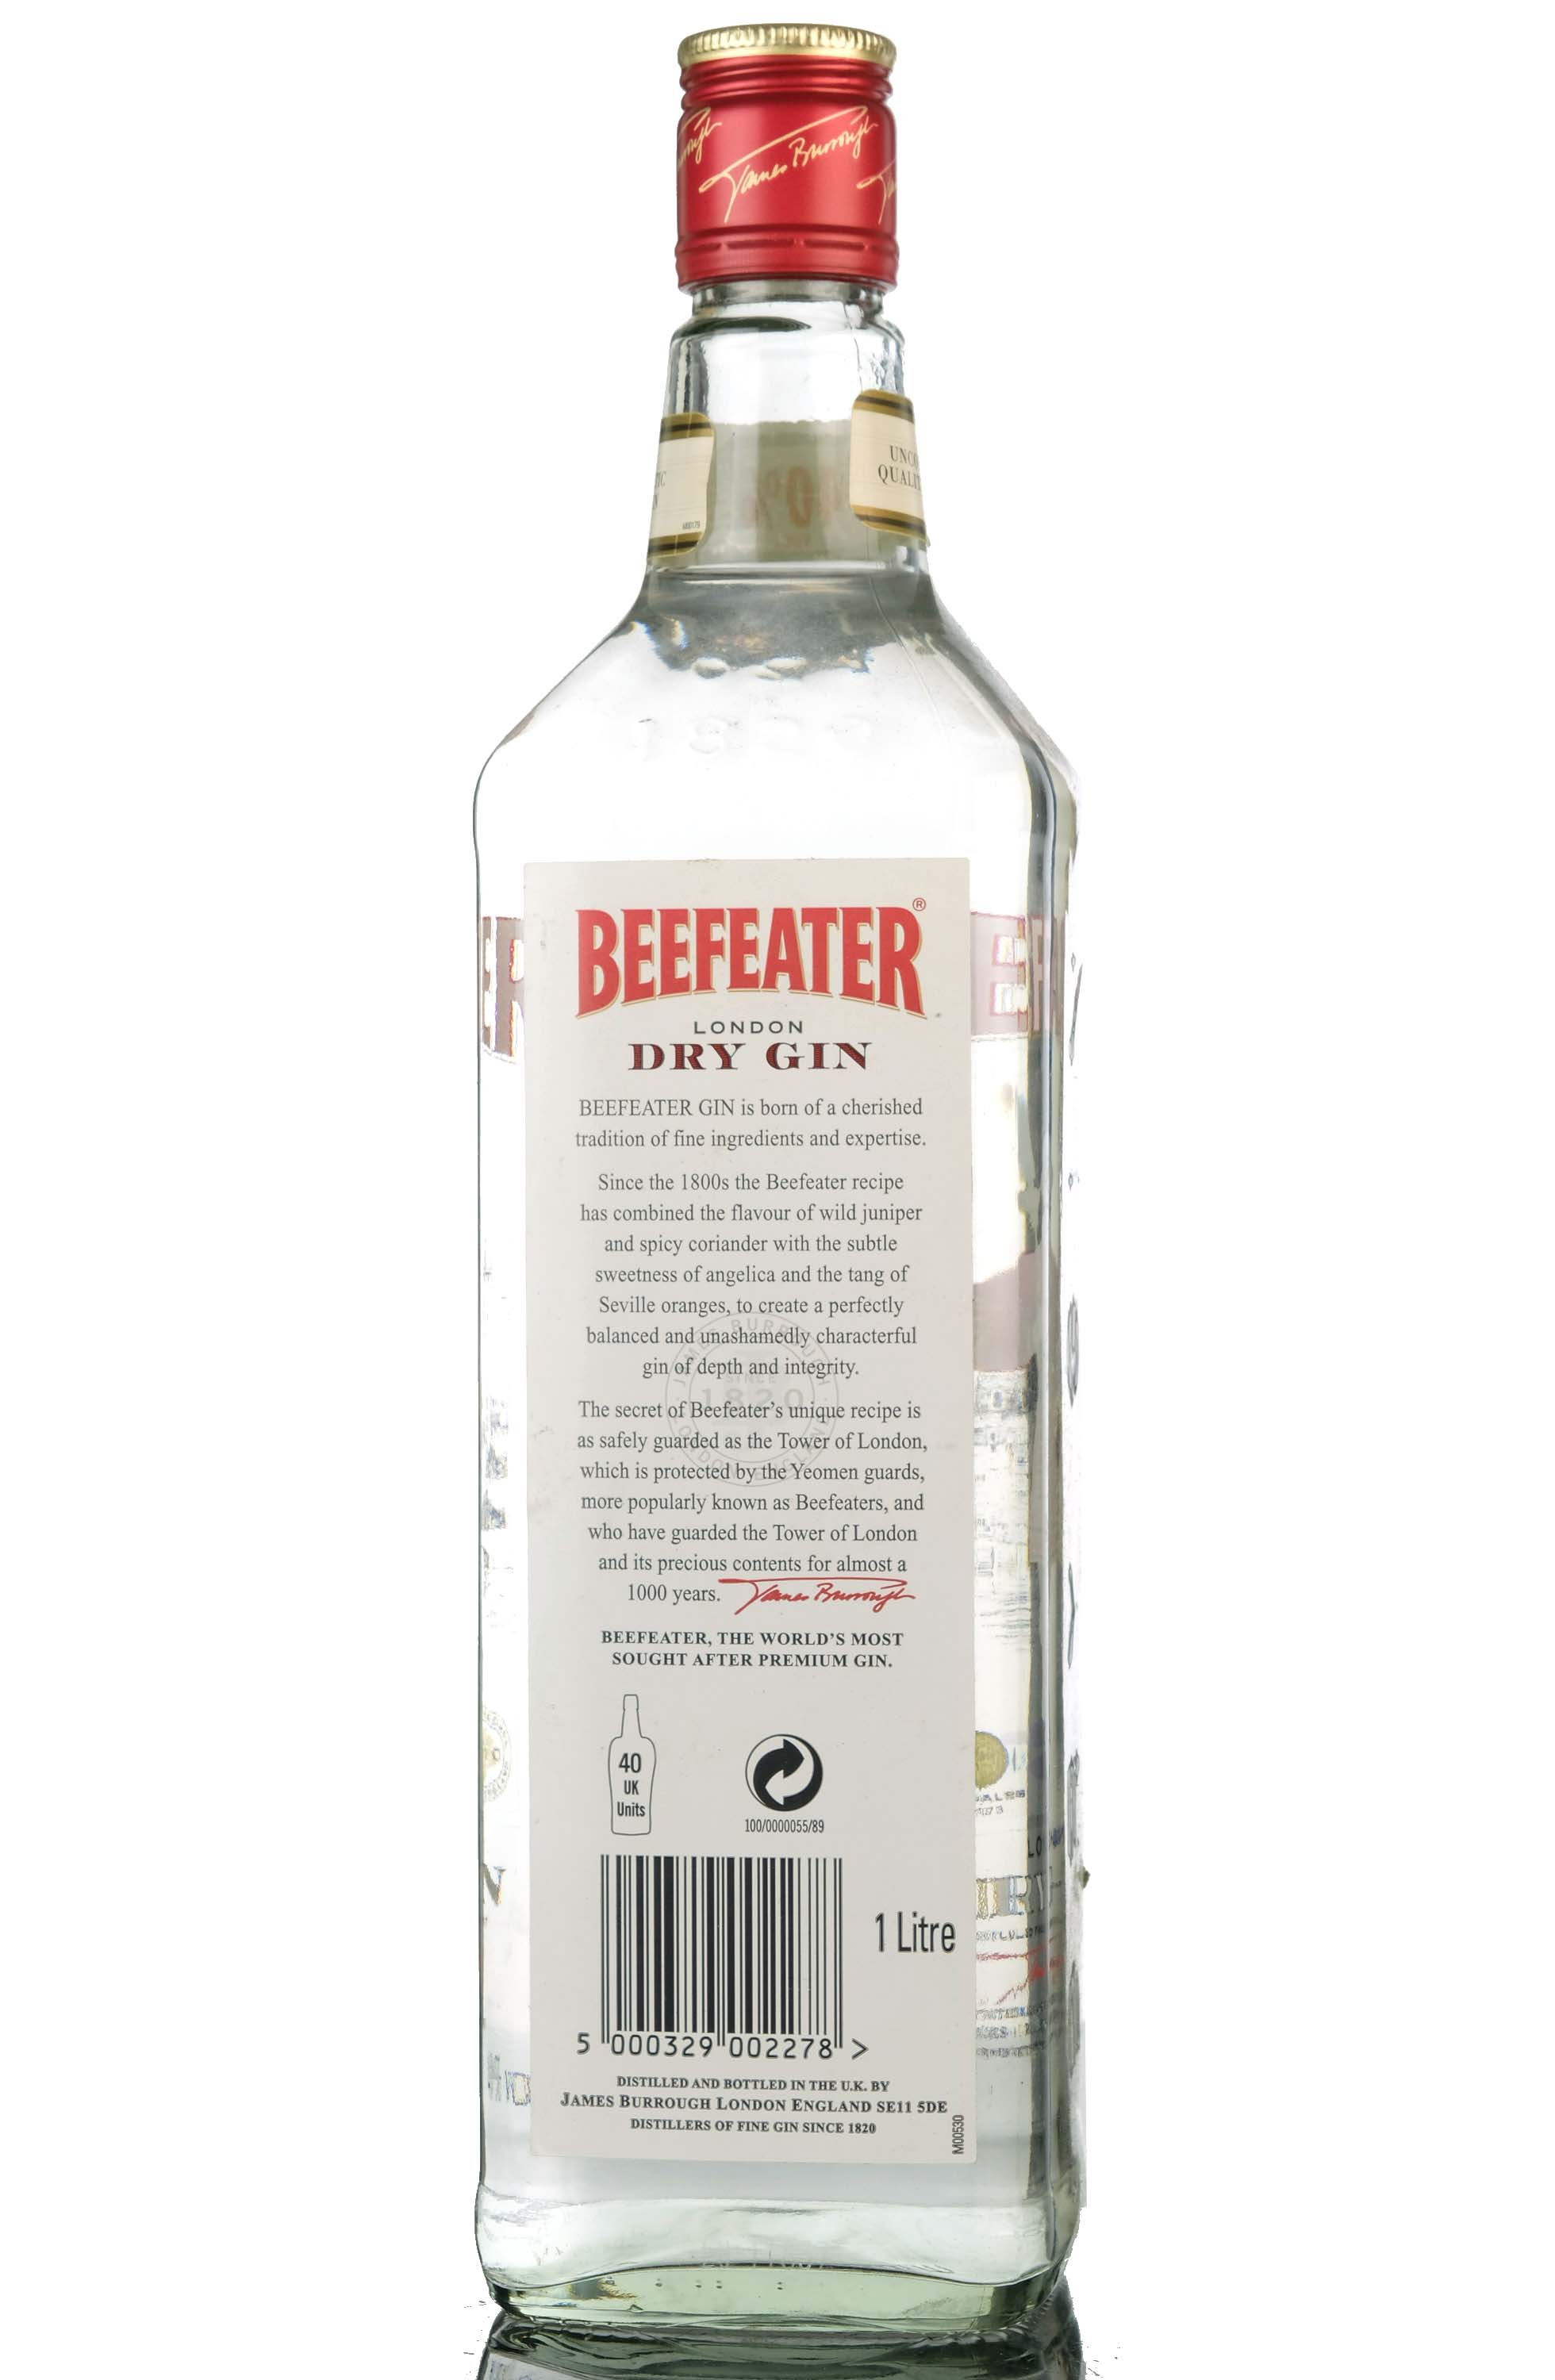 beefeater gin - 1 litre